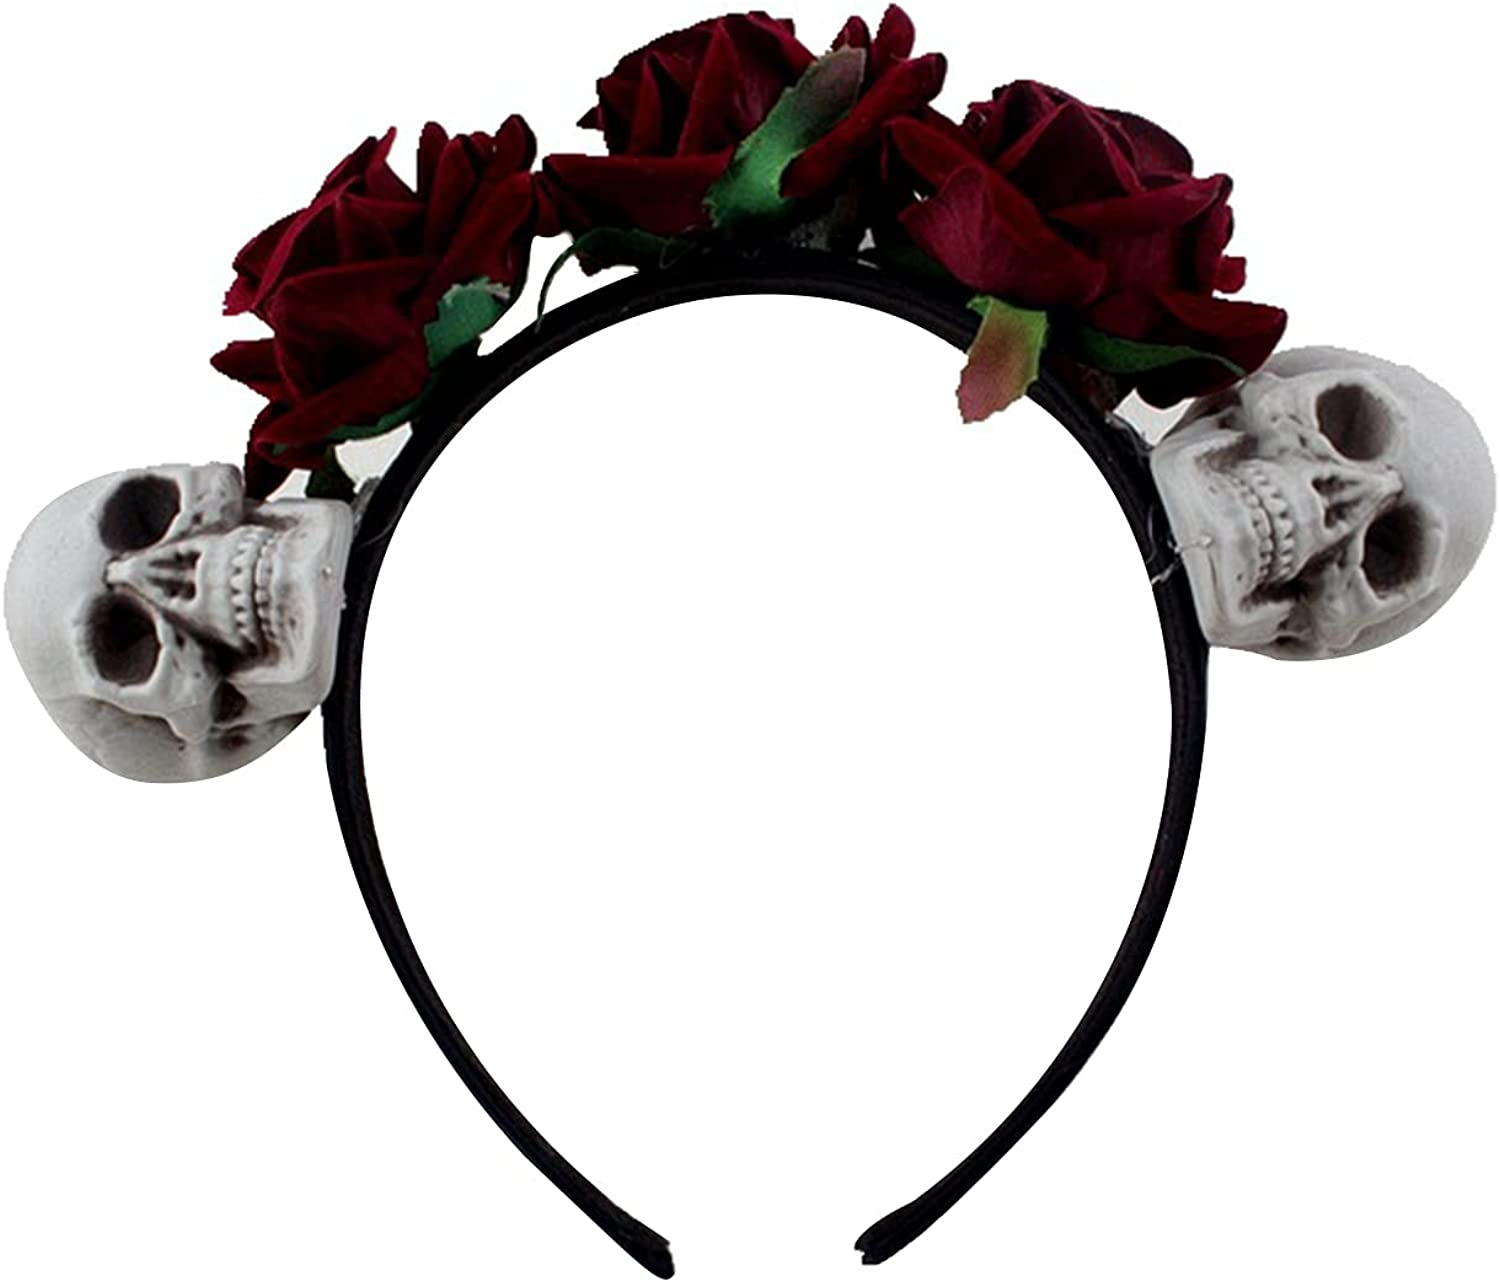 Day of The Max 44% OFF Dead Headband Gothic Rose Crown Flower 2021new shipping free Skull Costume